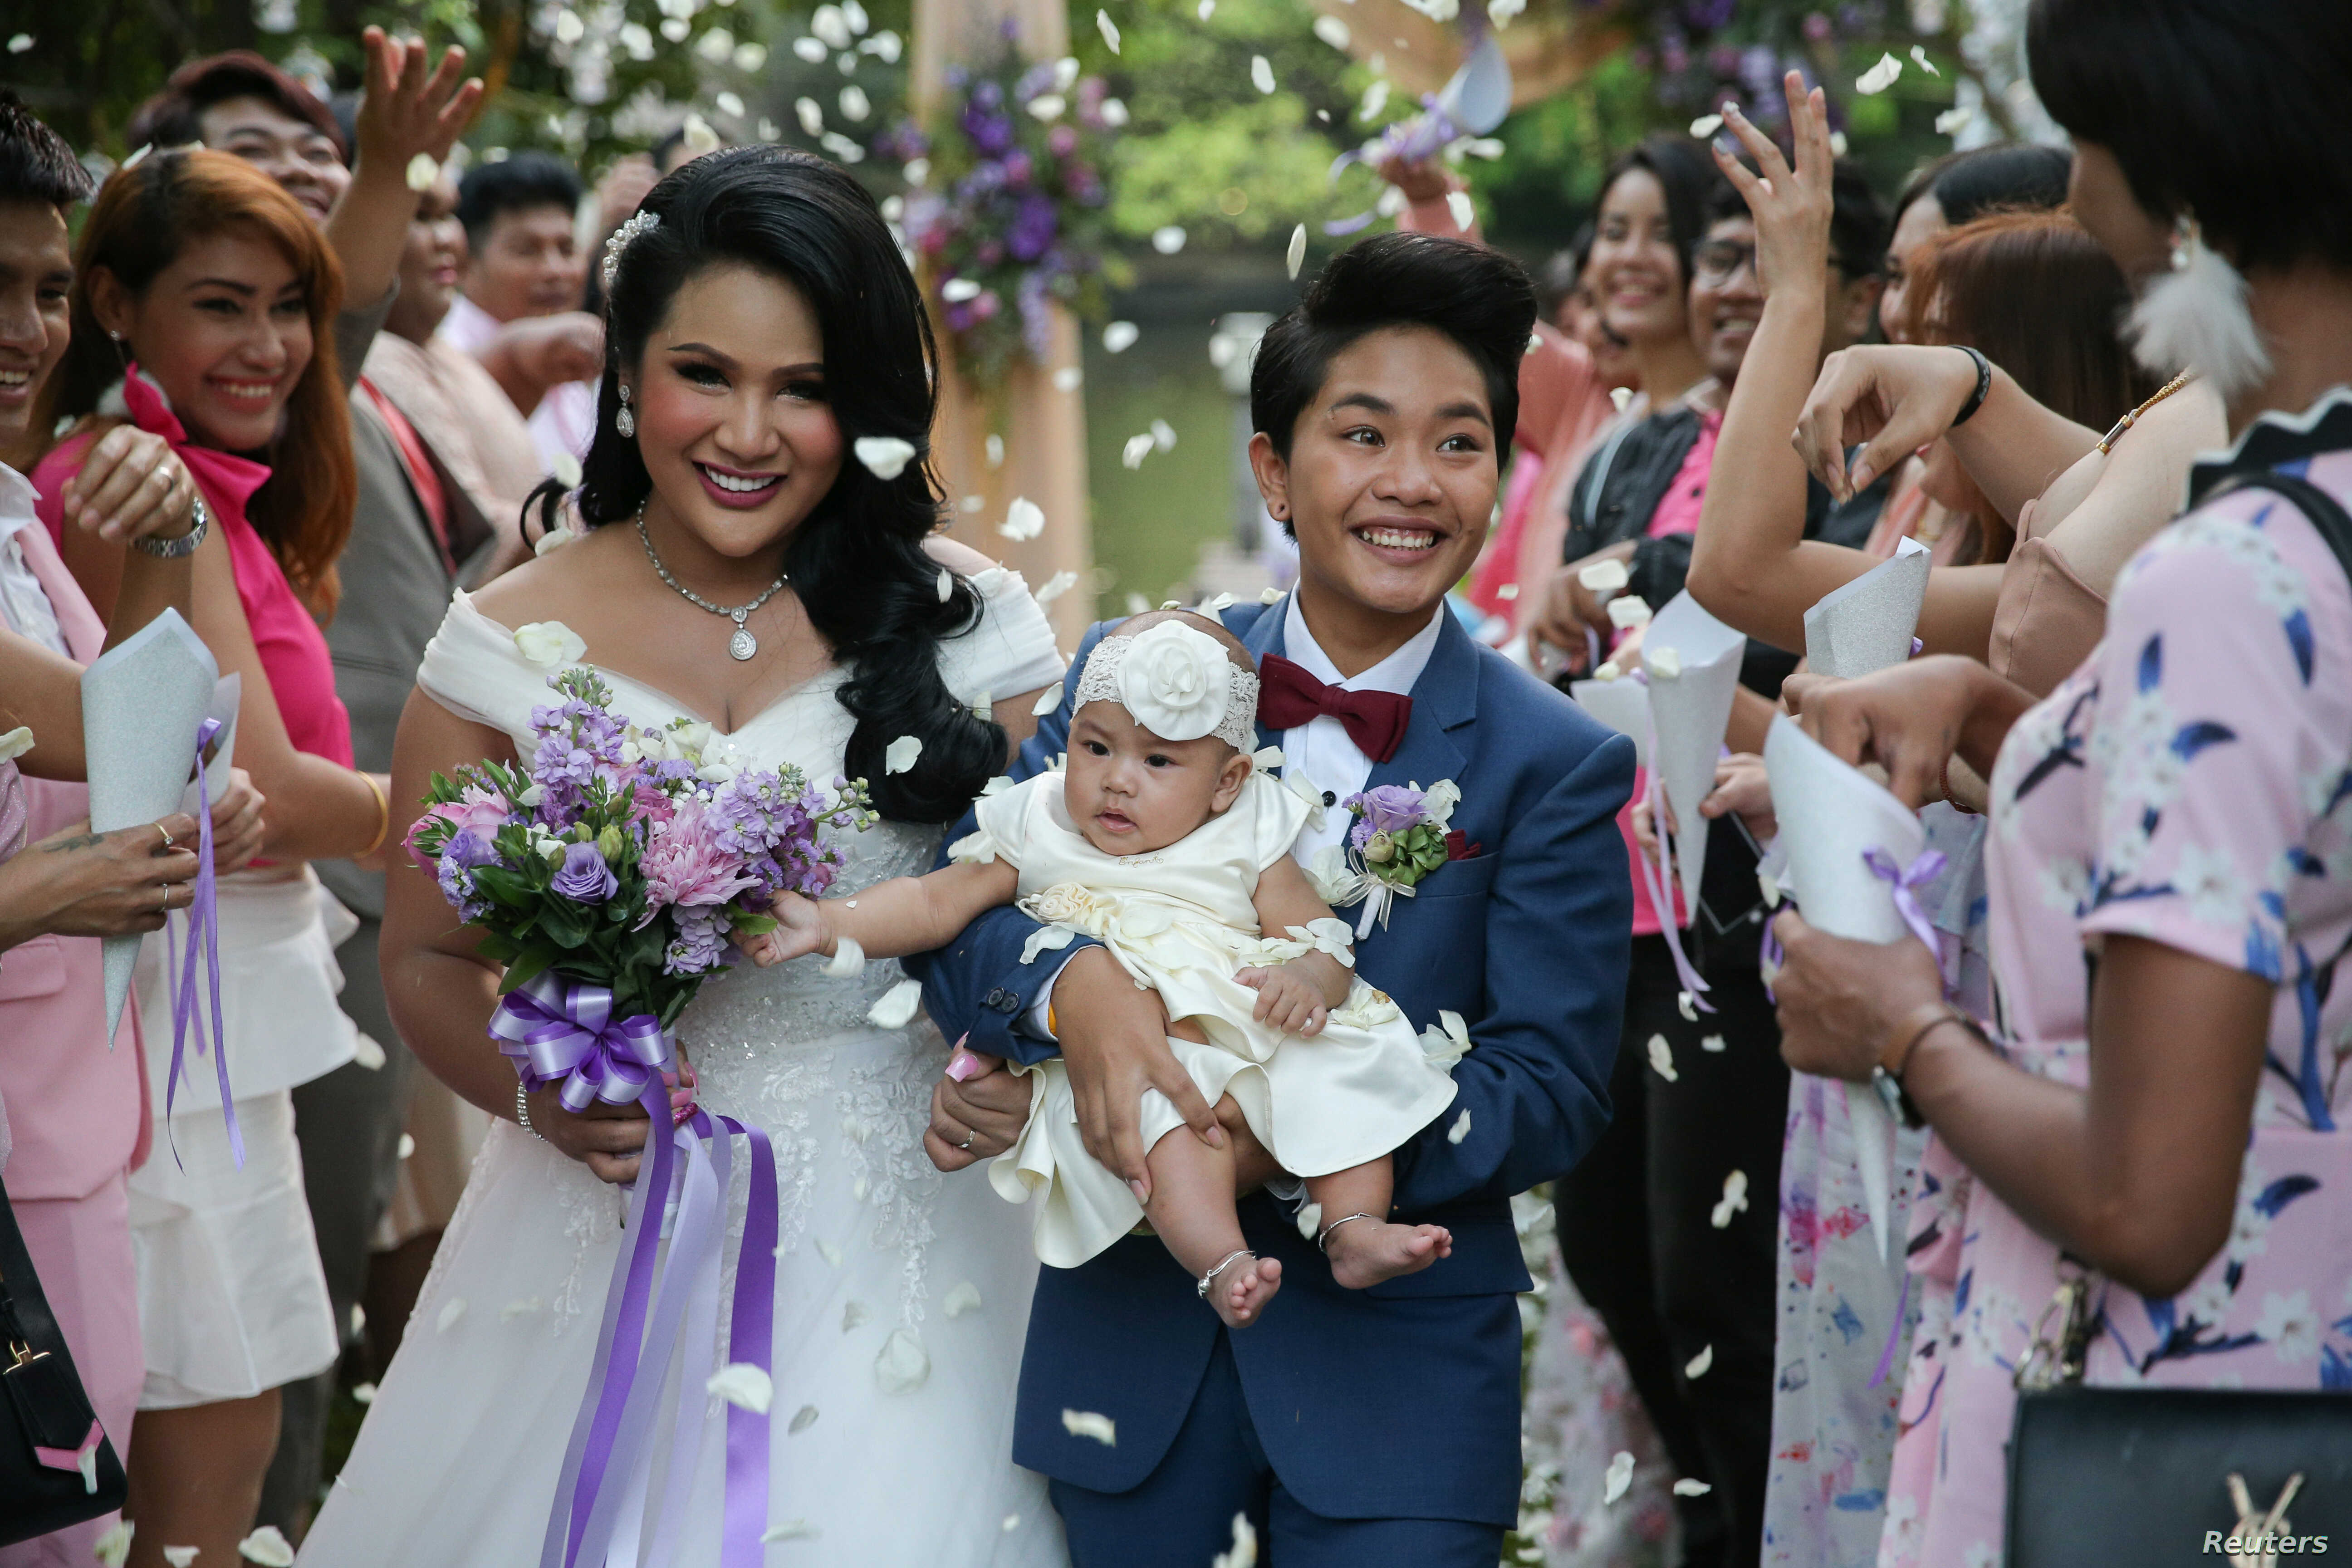 Bride Amornrat Ruamsin (L), 27, who is a transgender, holds up her five-month-old daughter with her groom Pitchaya Kachainrum (R), 16, during their wedding ceremony organised by a local TV show, in Bangkok, Thailand, February 9, 2018.